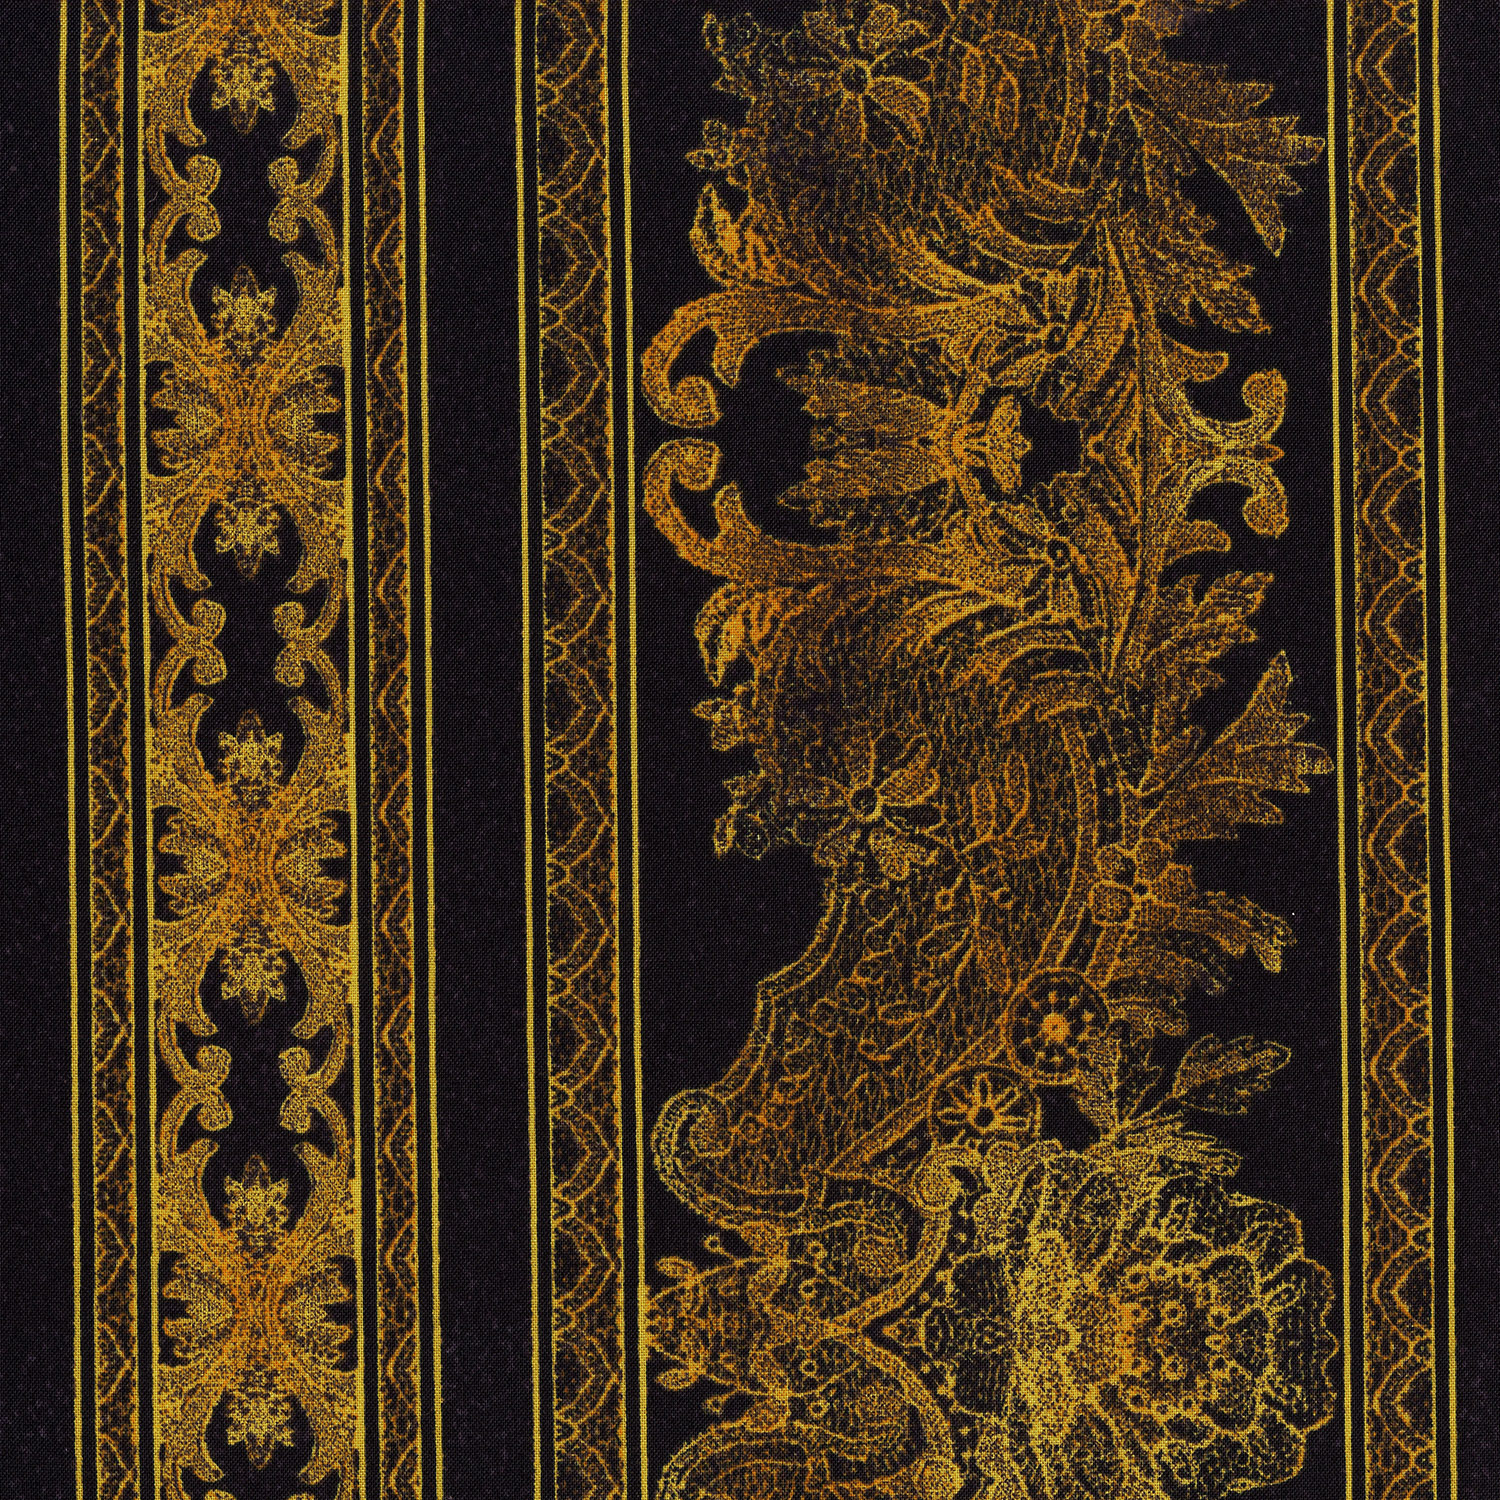 3012-002 LACE BORDER-GOLD